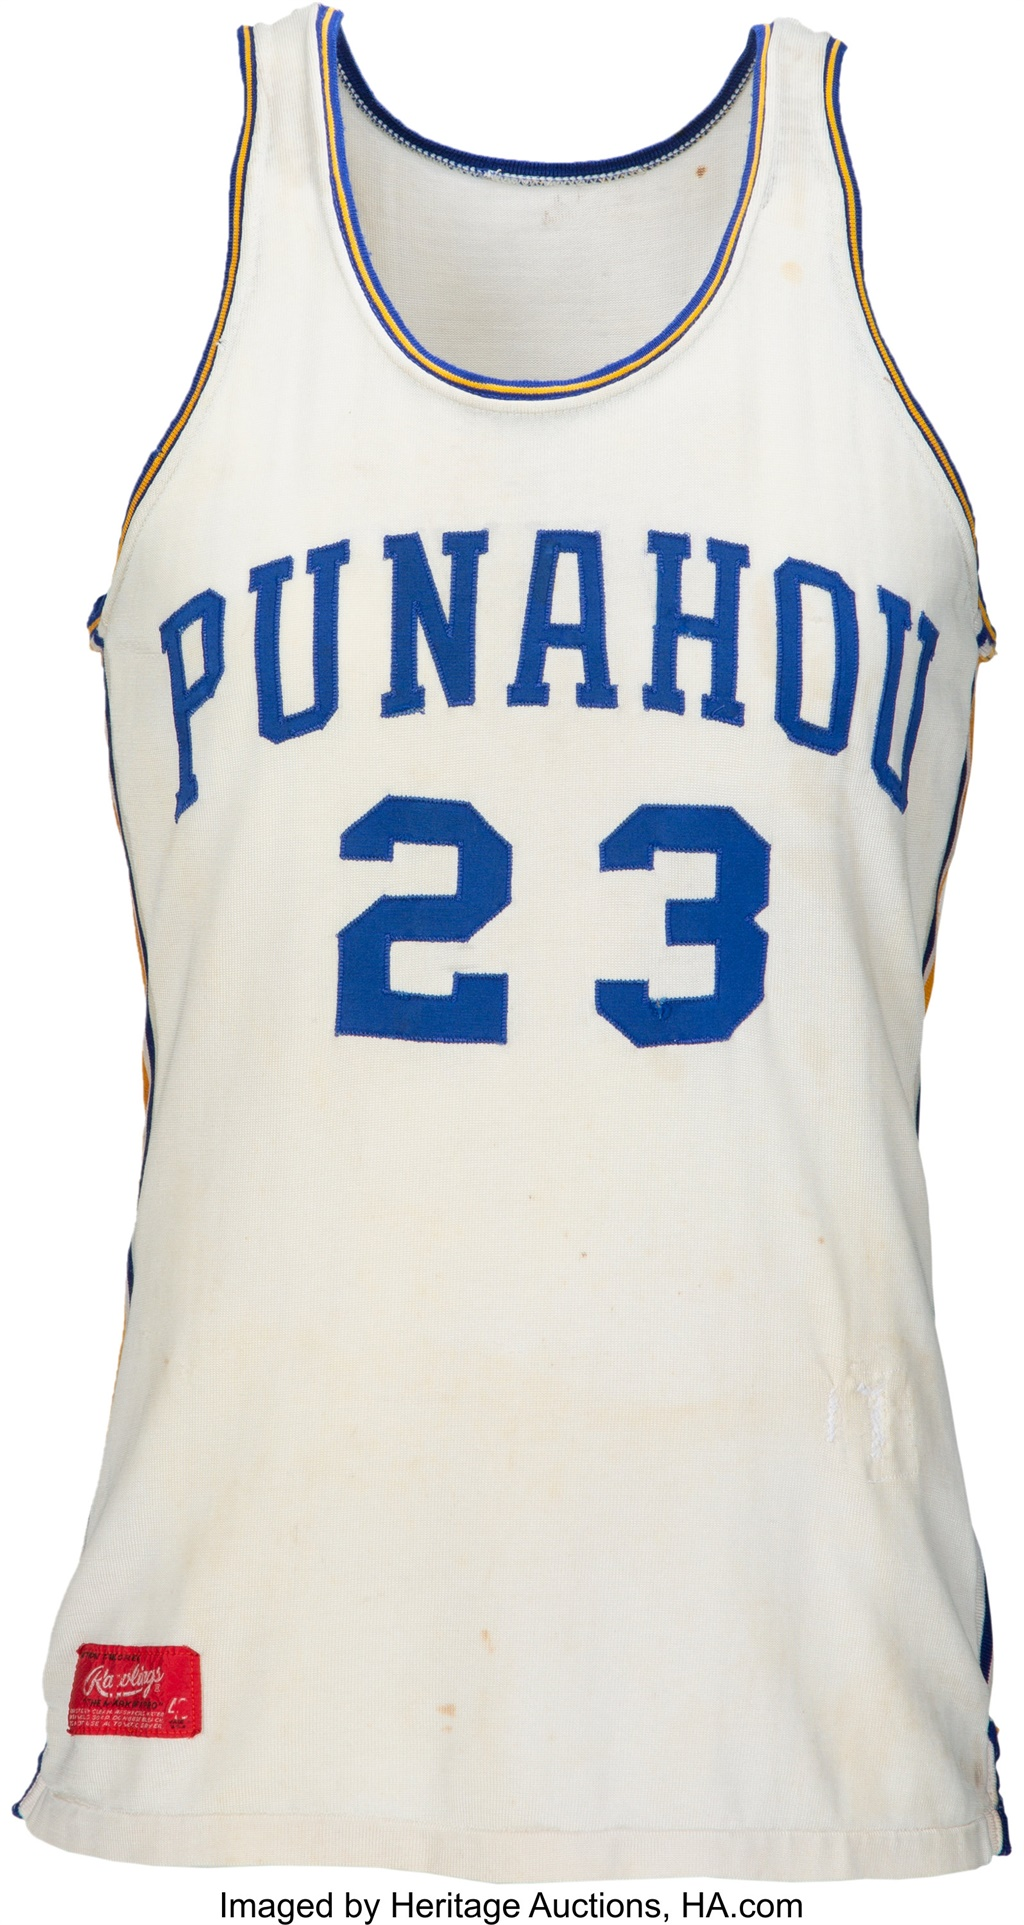 Obama basketball jersey sells for $120 000